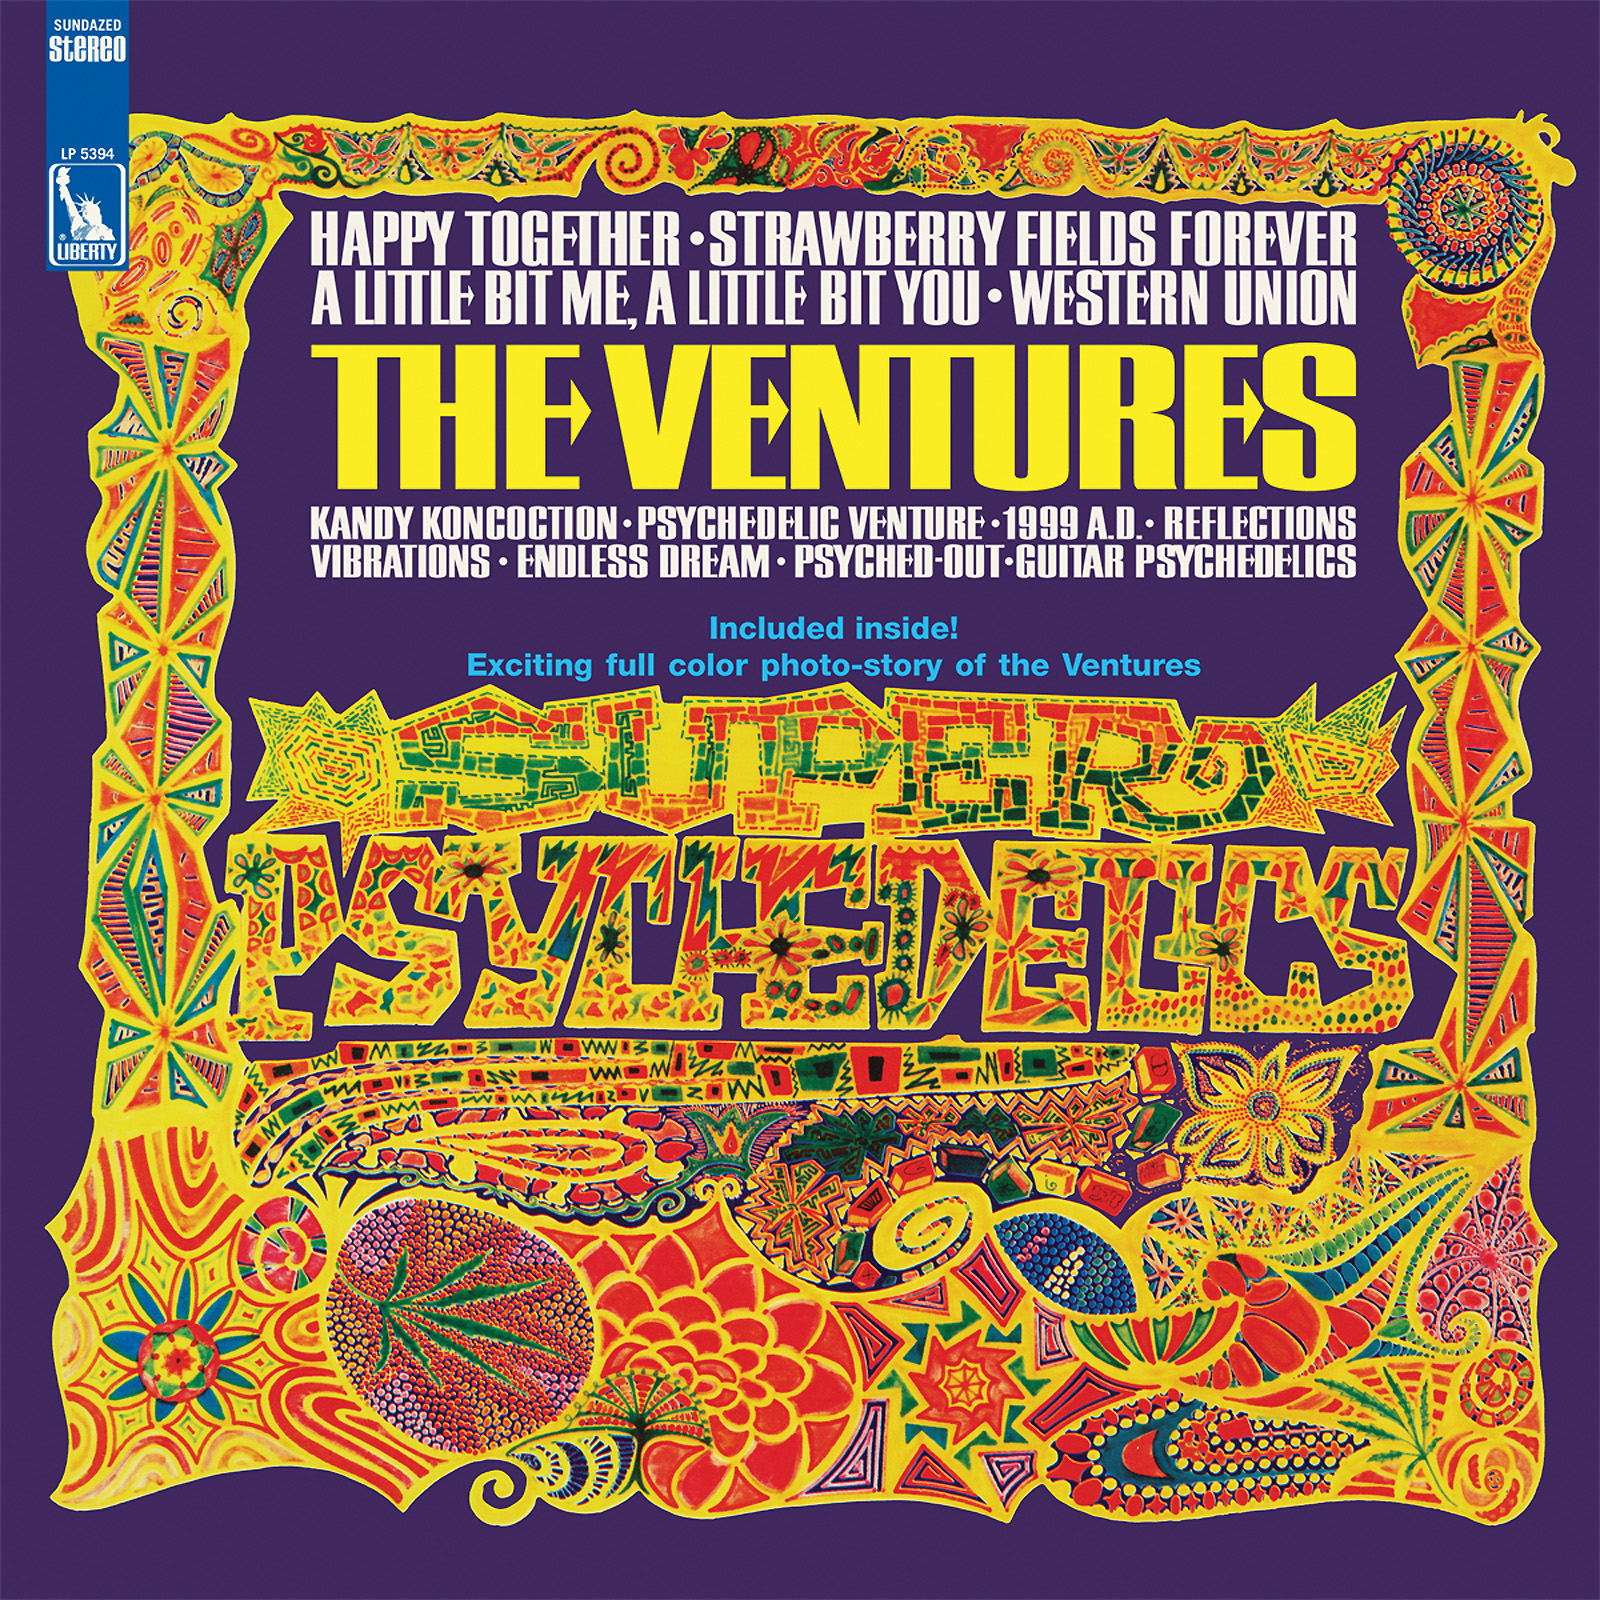 Ventures, The - Super Psychedelics LIMITED EDITION Colored Vinyl LP